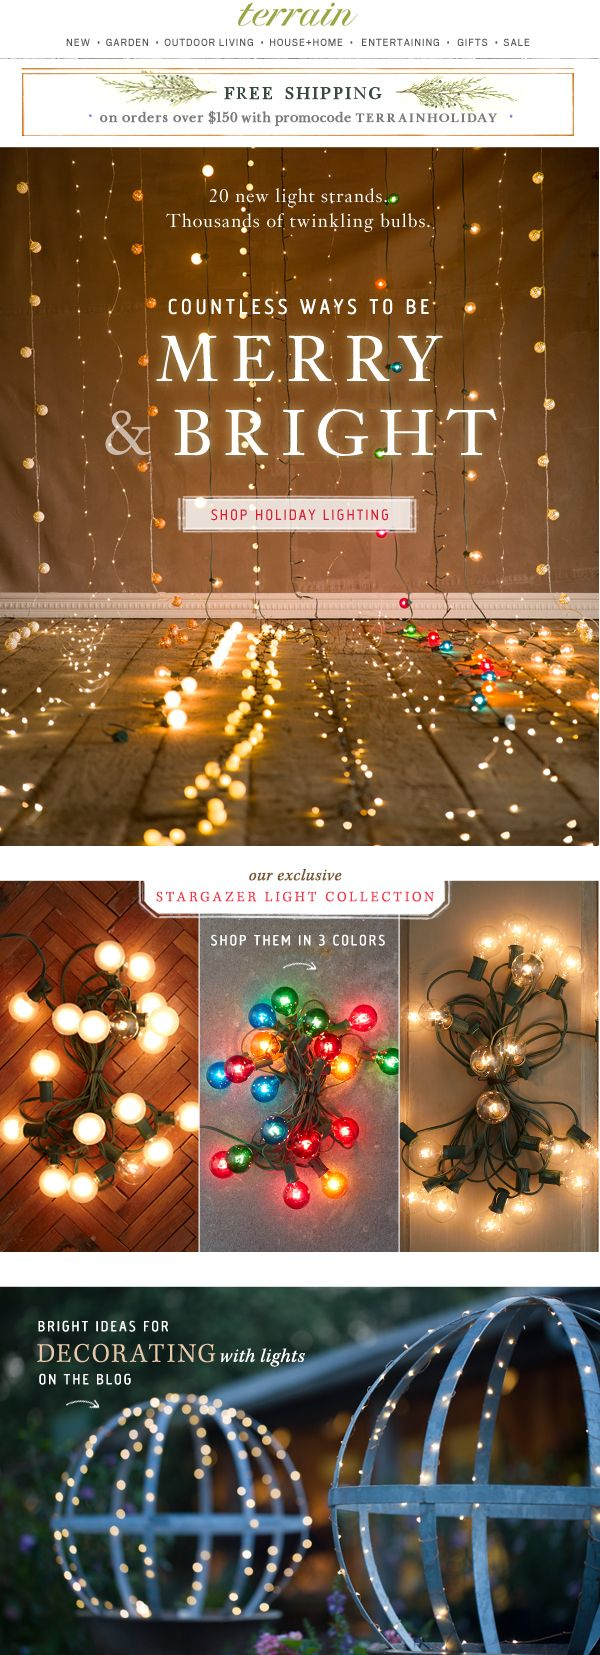 20 new strands of #holiday #lights. Countless ways to feel merry and bright at #shopterrain November 2